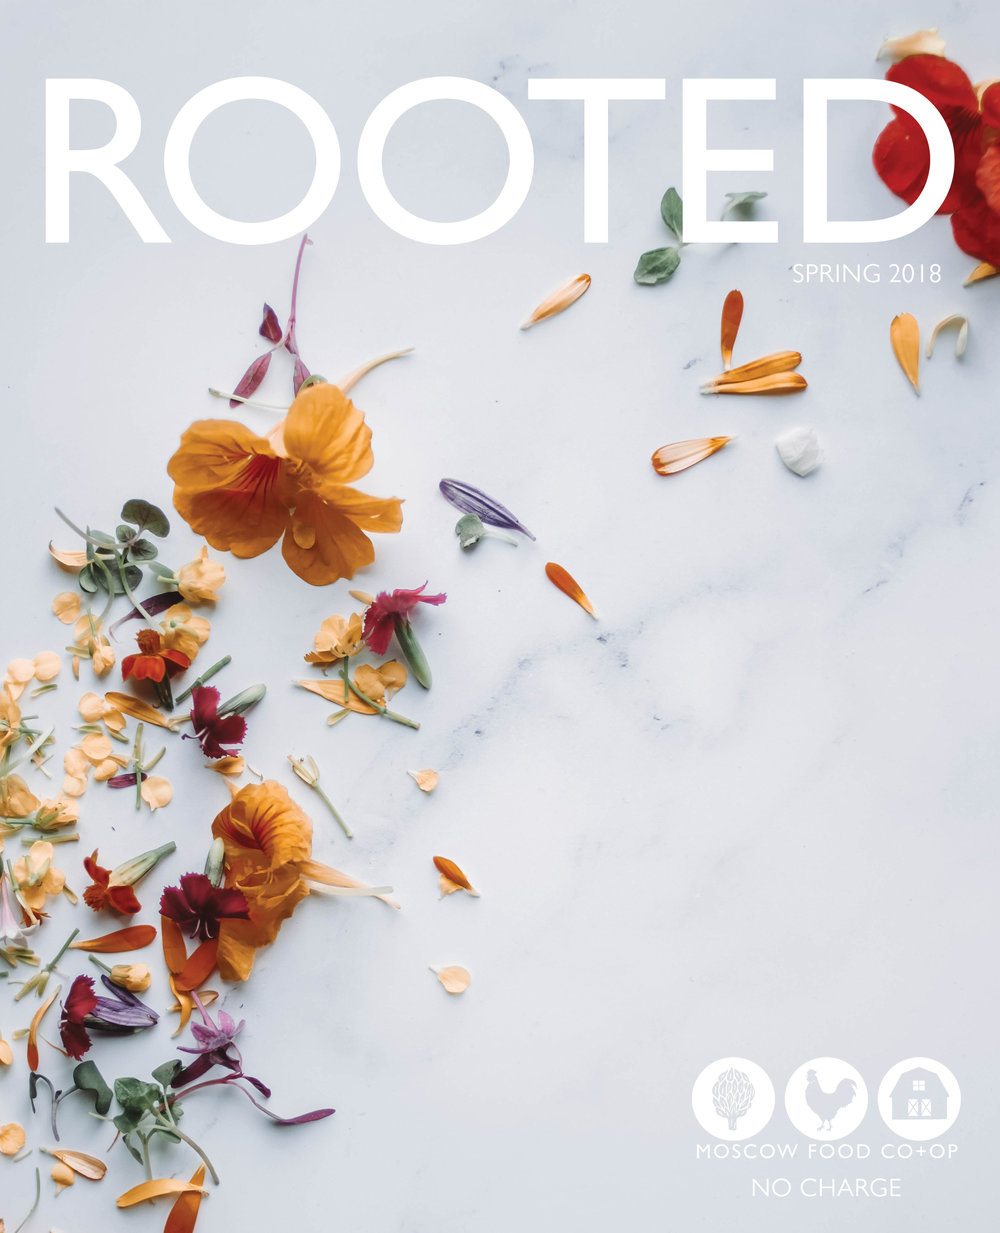 Spring 2018 - In this issue, you can read about The Genesee Valley Daoist Hermitage, learn how the Moscow Food Co-op has positioned itself as a key player in the fight against food waste, discover edible flower recipes, and more!